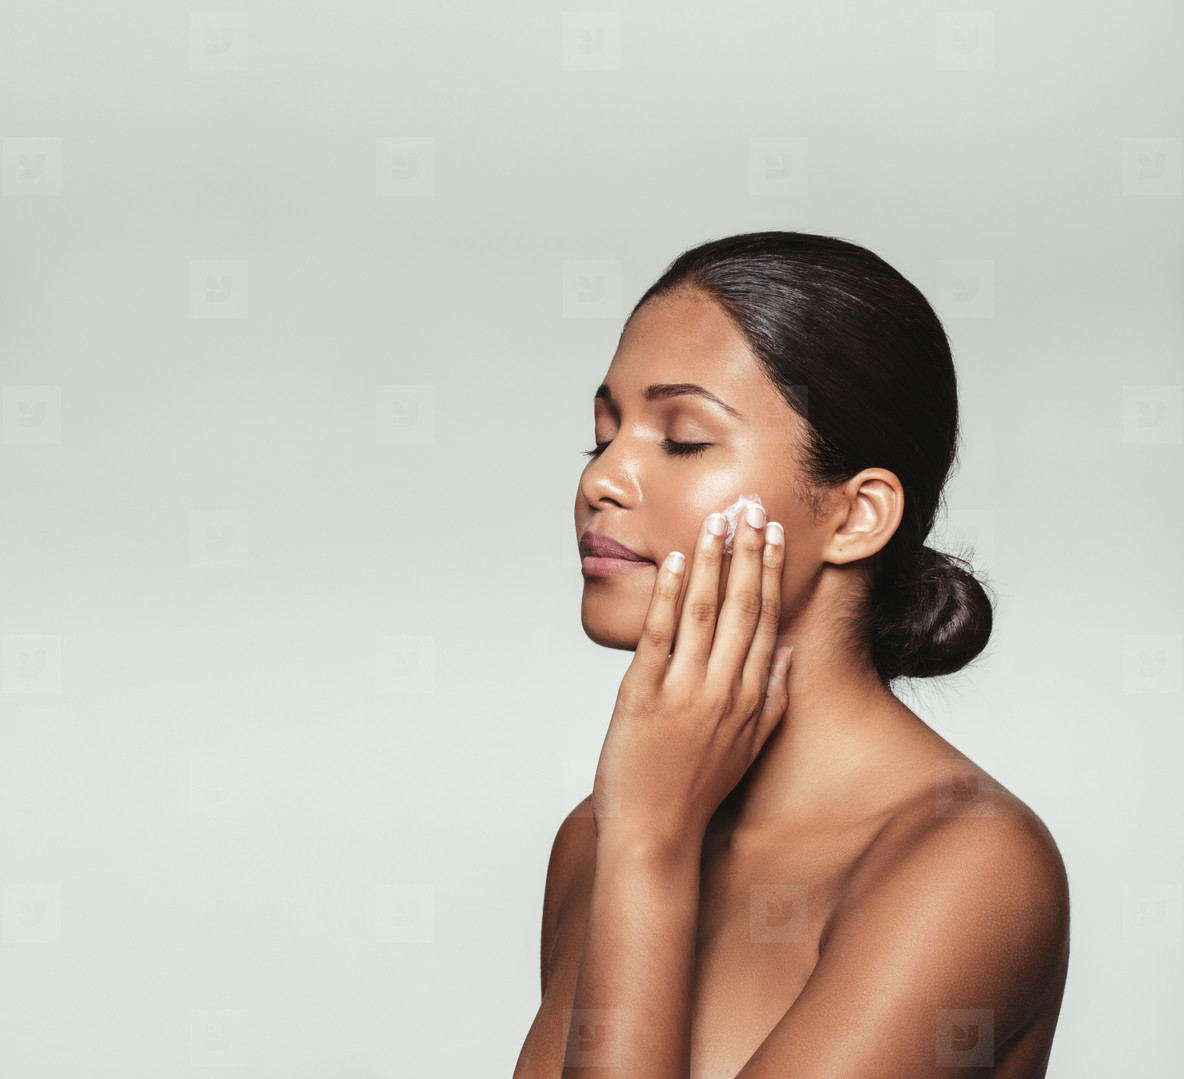 Beautiful young woman applying moisturizer to her face